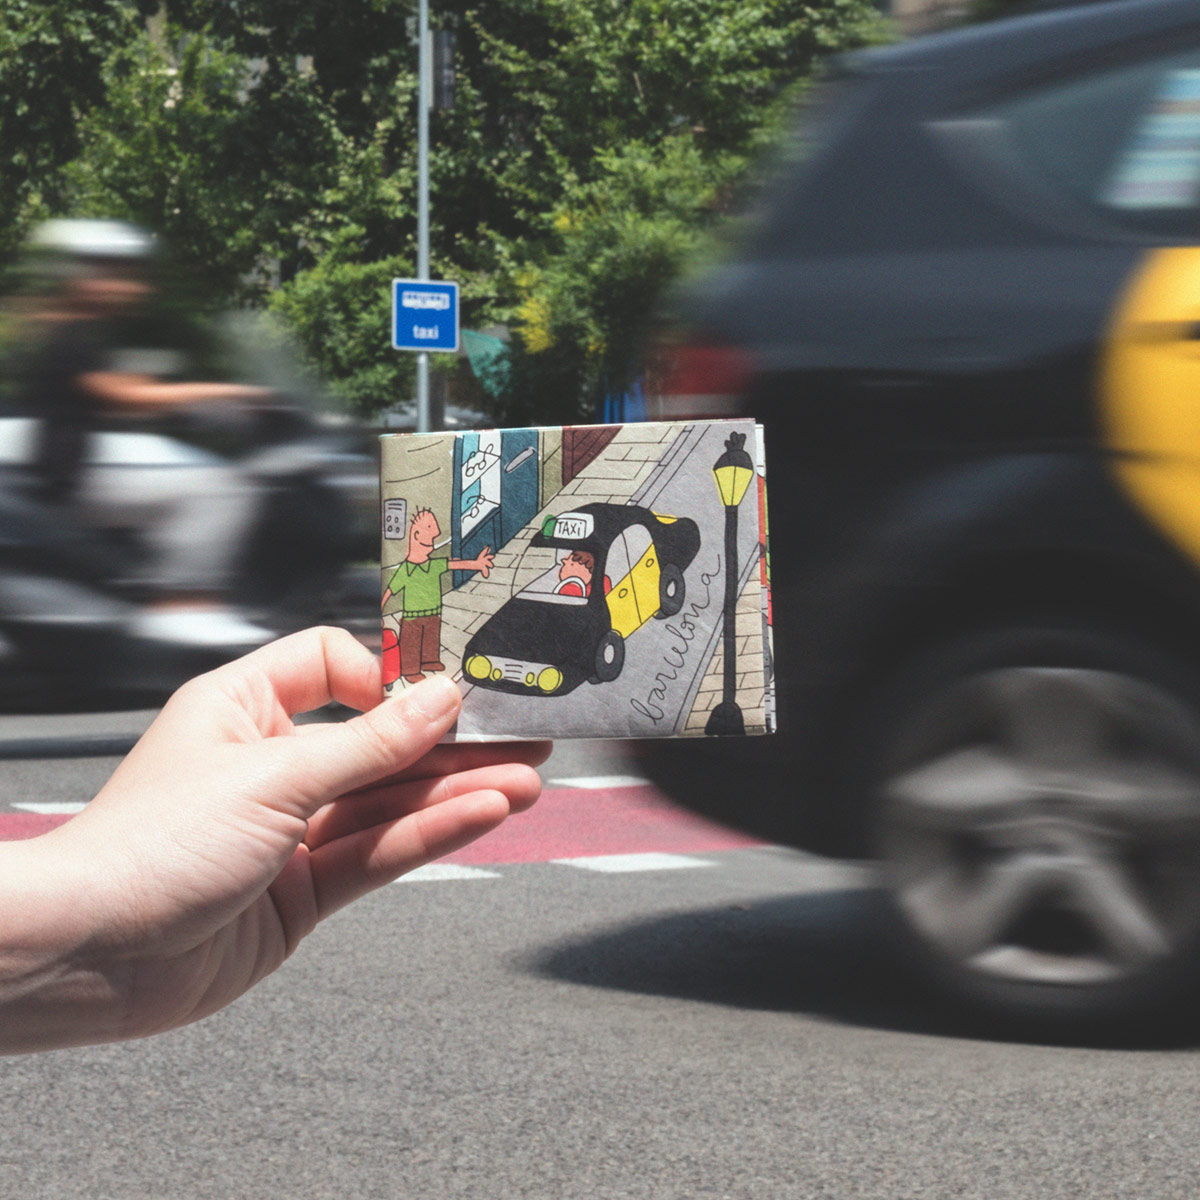 paper_wallet_taxi_passeig_sanjoan